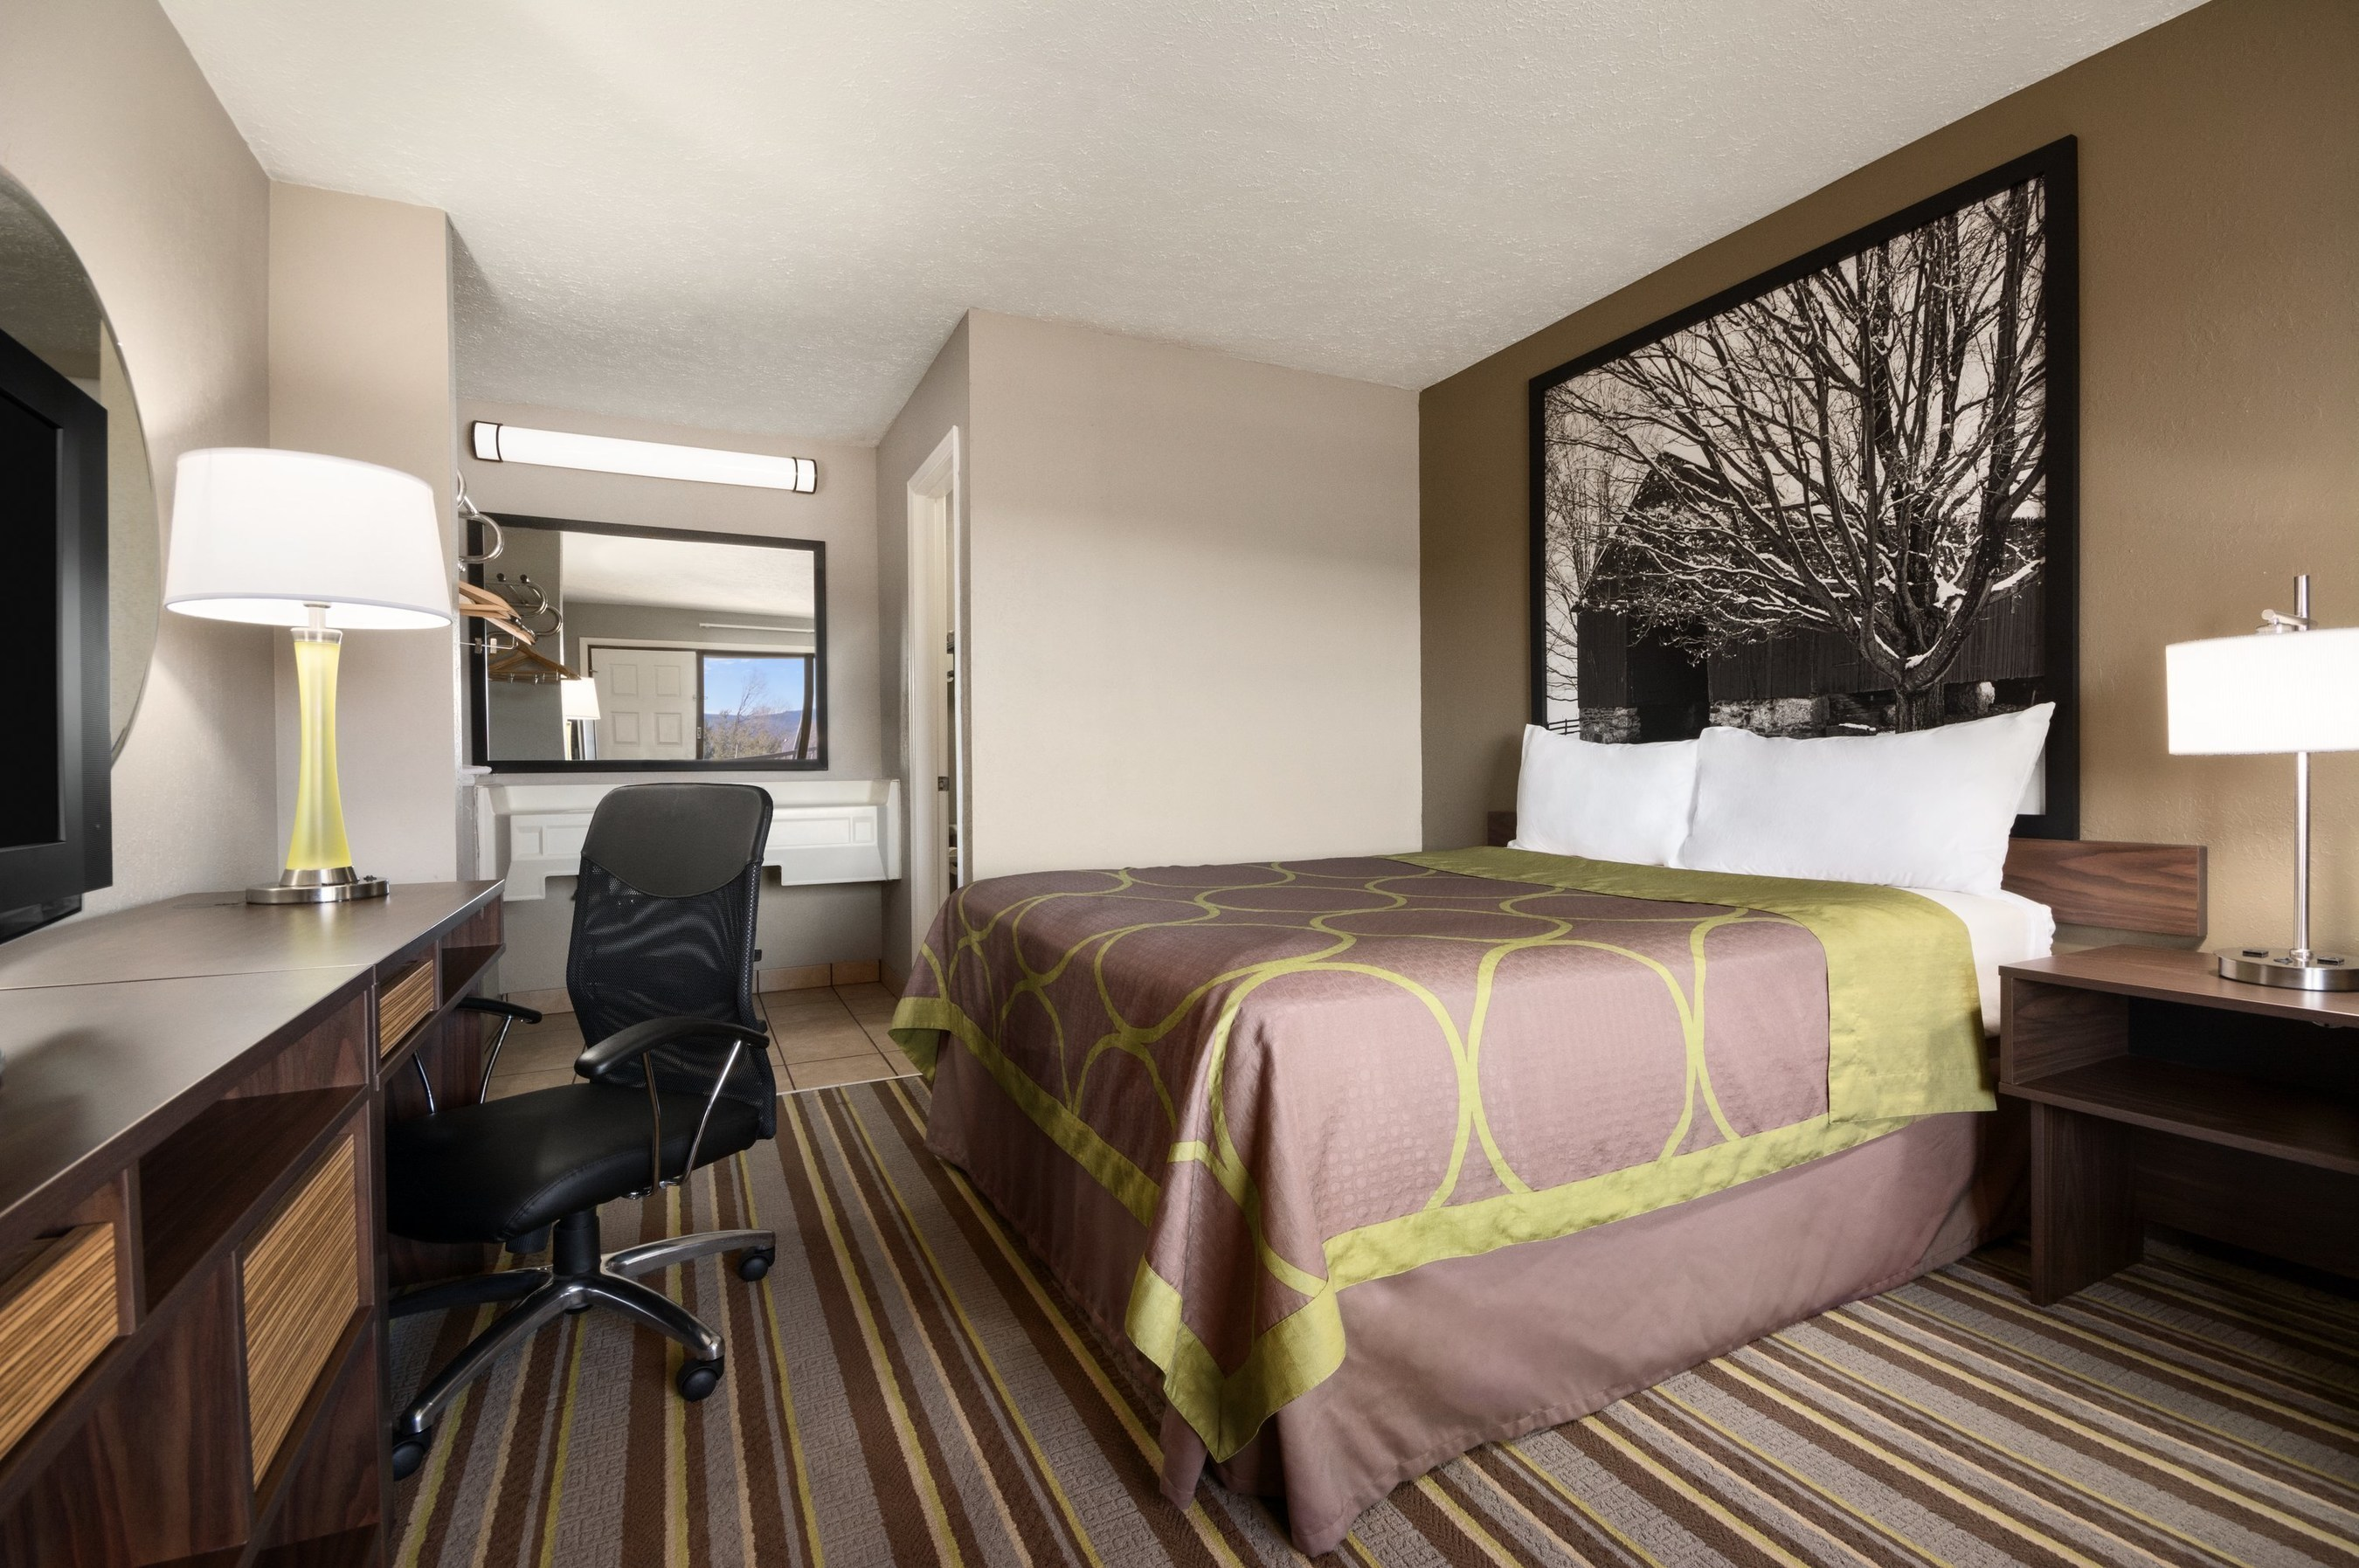 Super 8's redesign centers around elevated guestrooms that feature new bedding and curtains, a refreshed color palette, sleek finishings, modern amenities and signature black and white artwork. Above, the Super 8 in Wytheville, Va.